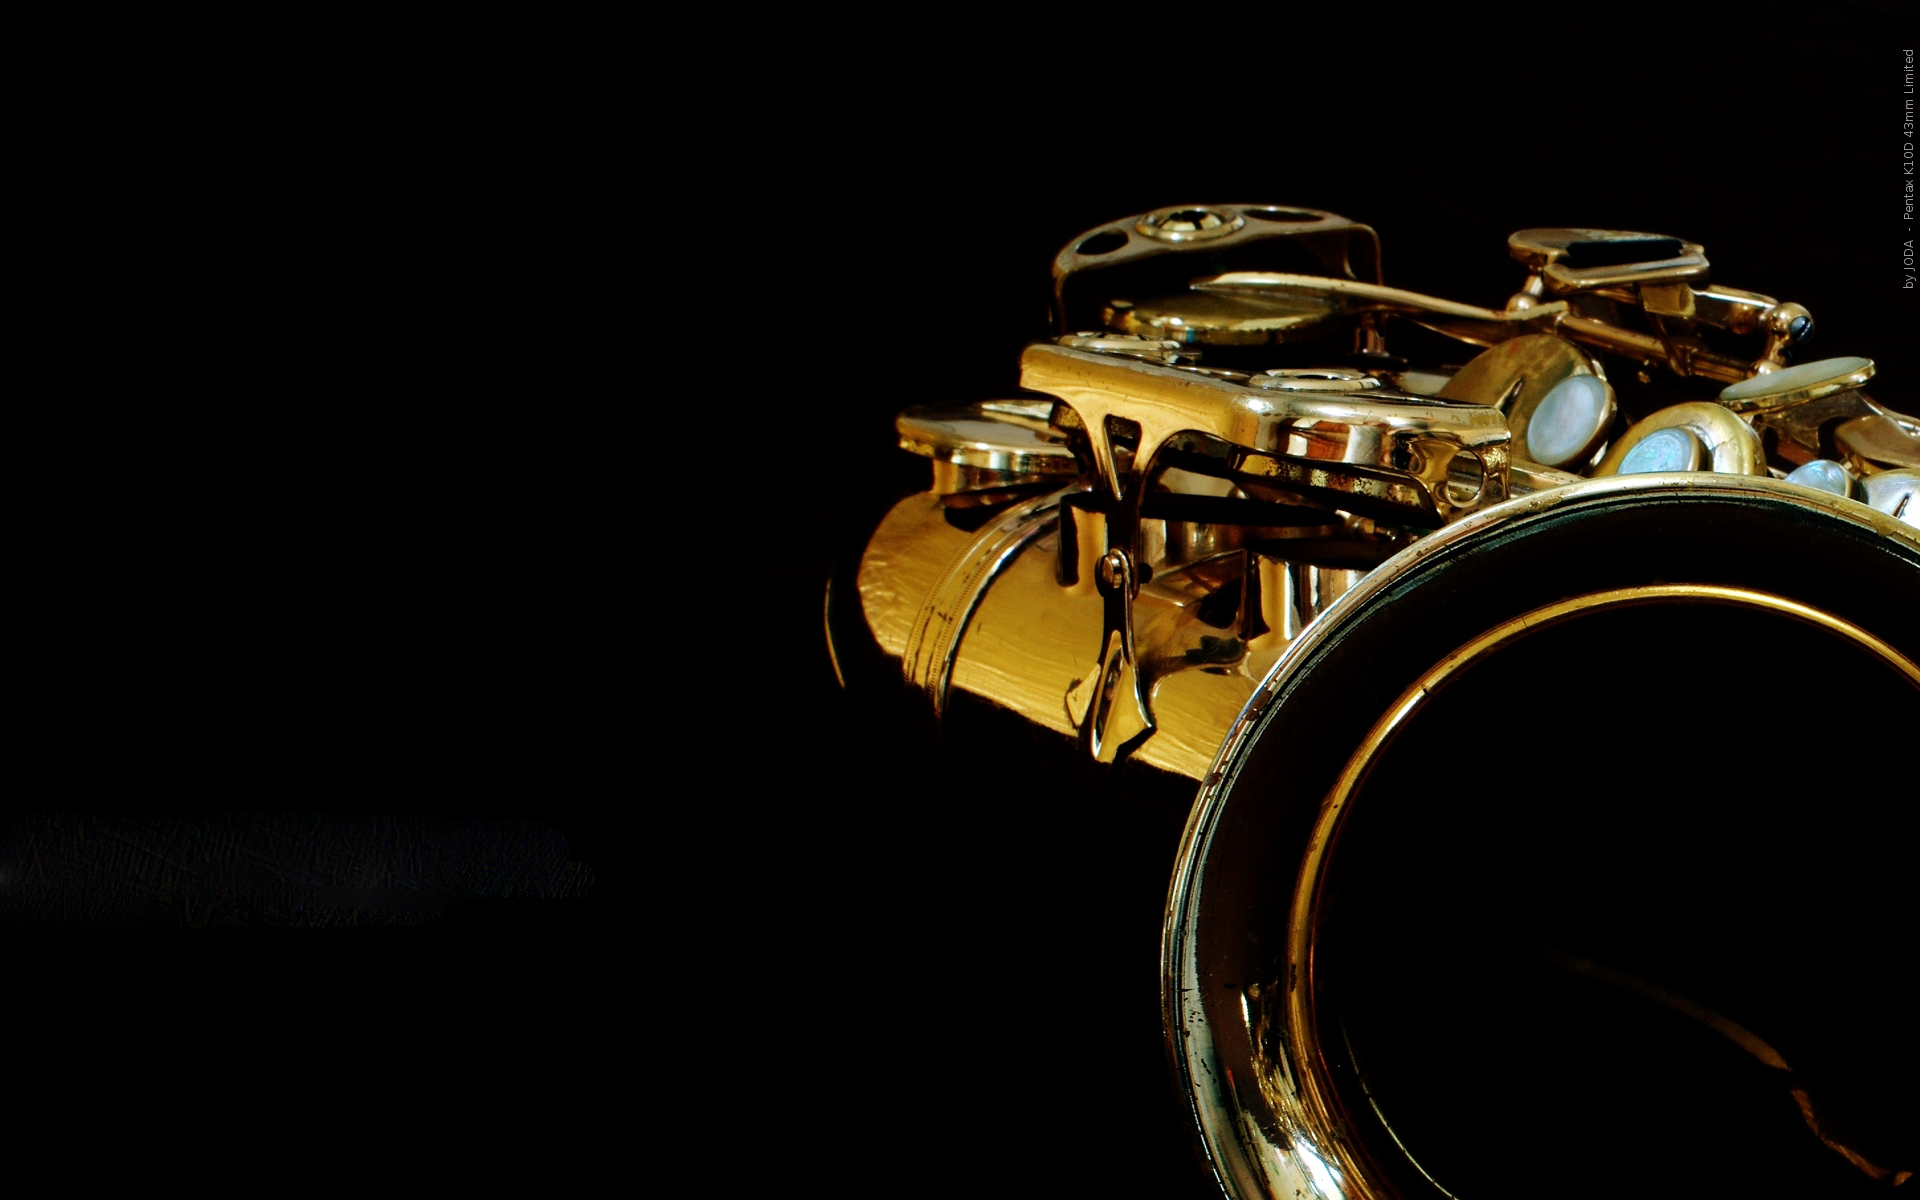 in-b-minor-saxophone-music-instruments-photography.jpg